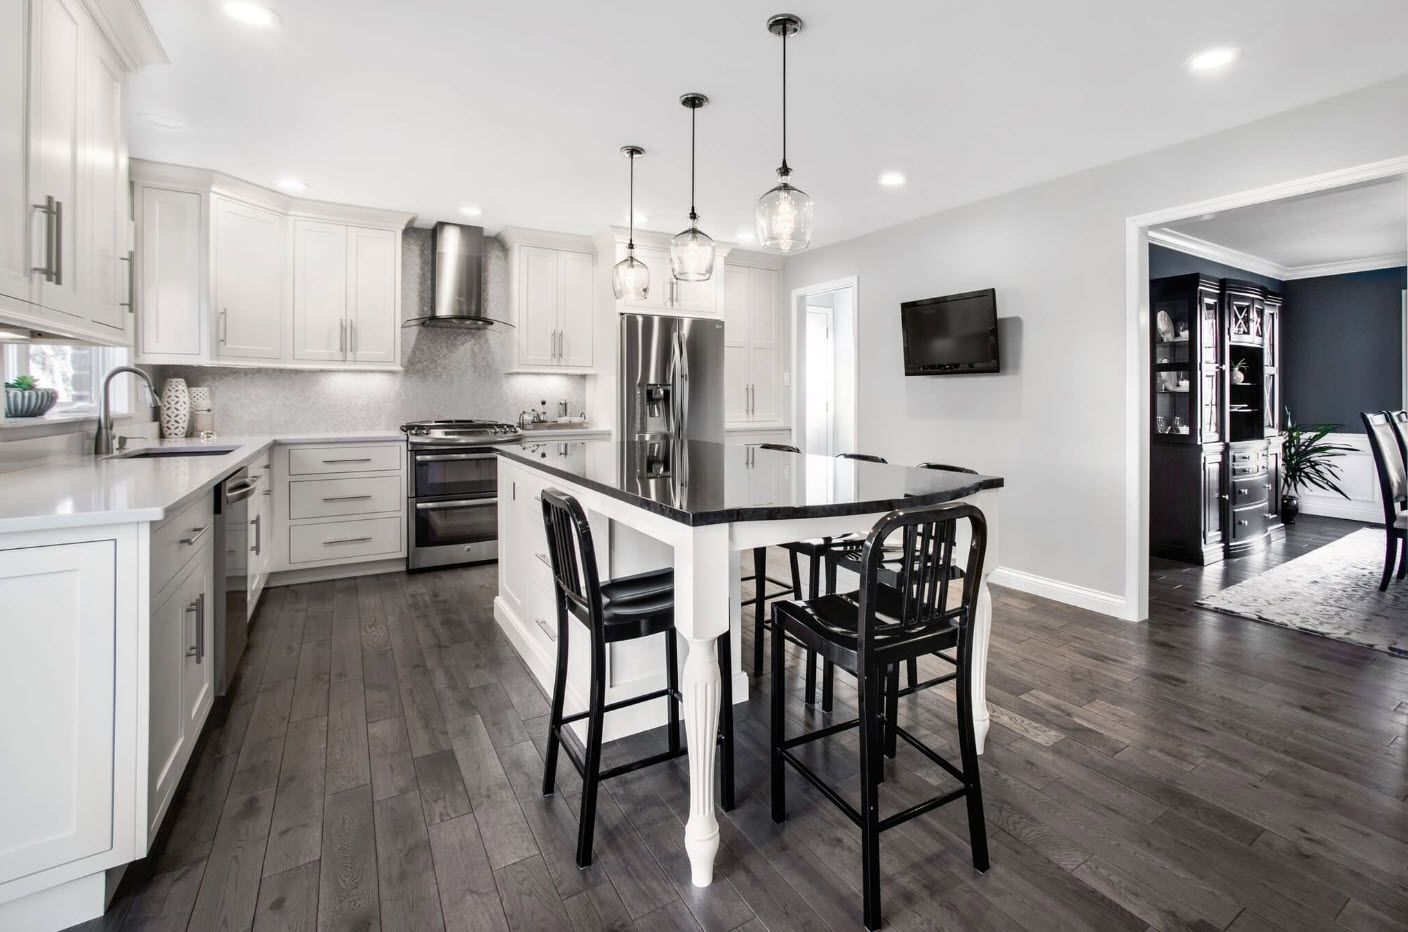 Large kitchen in the cottage with dining zone and island in the center